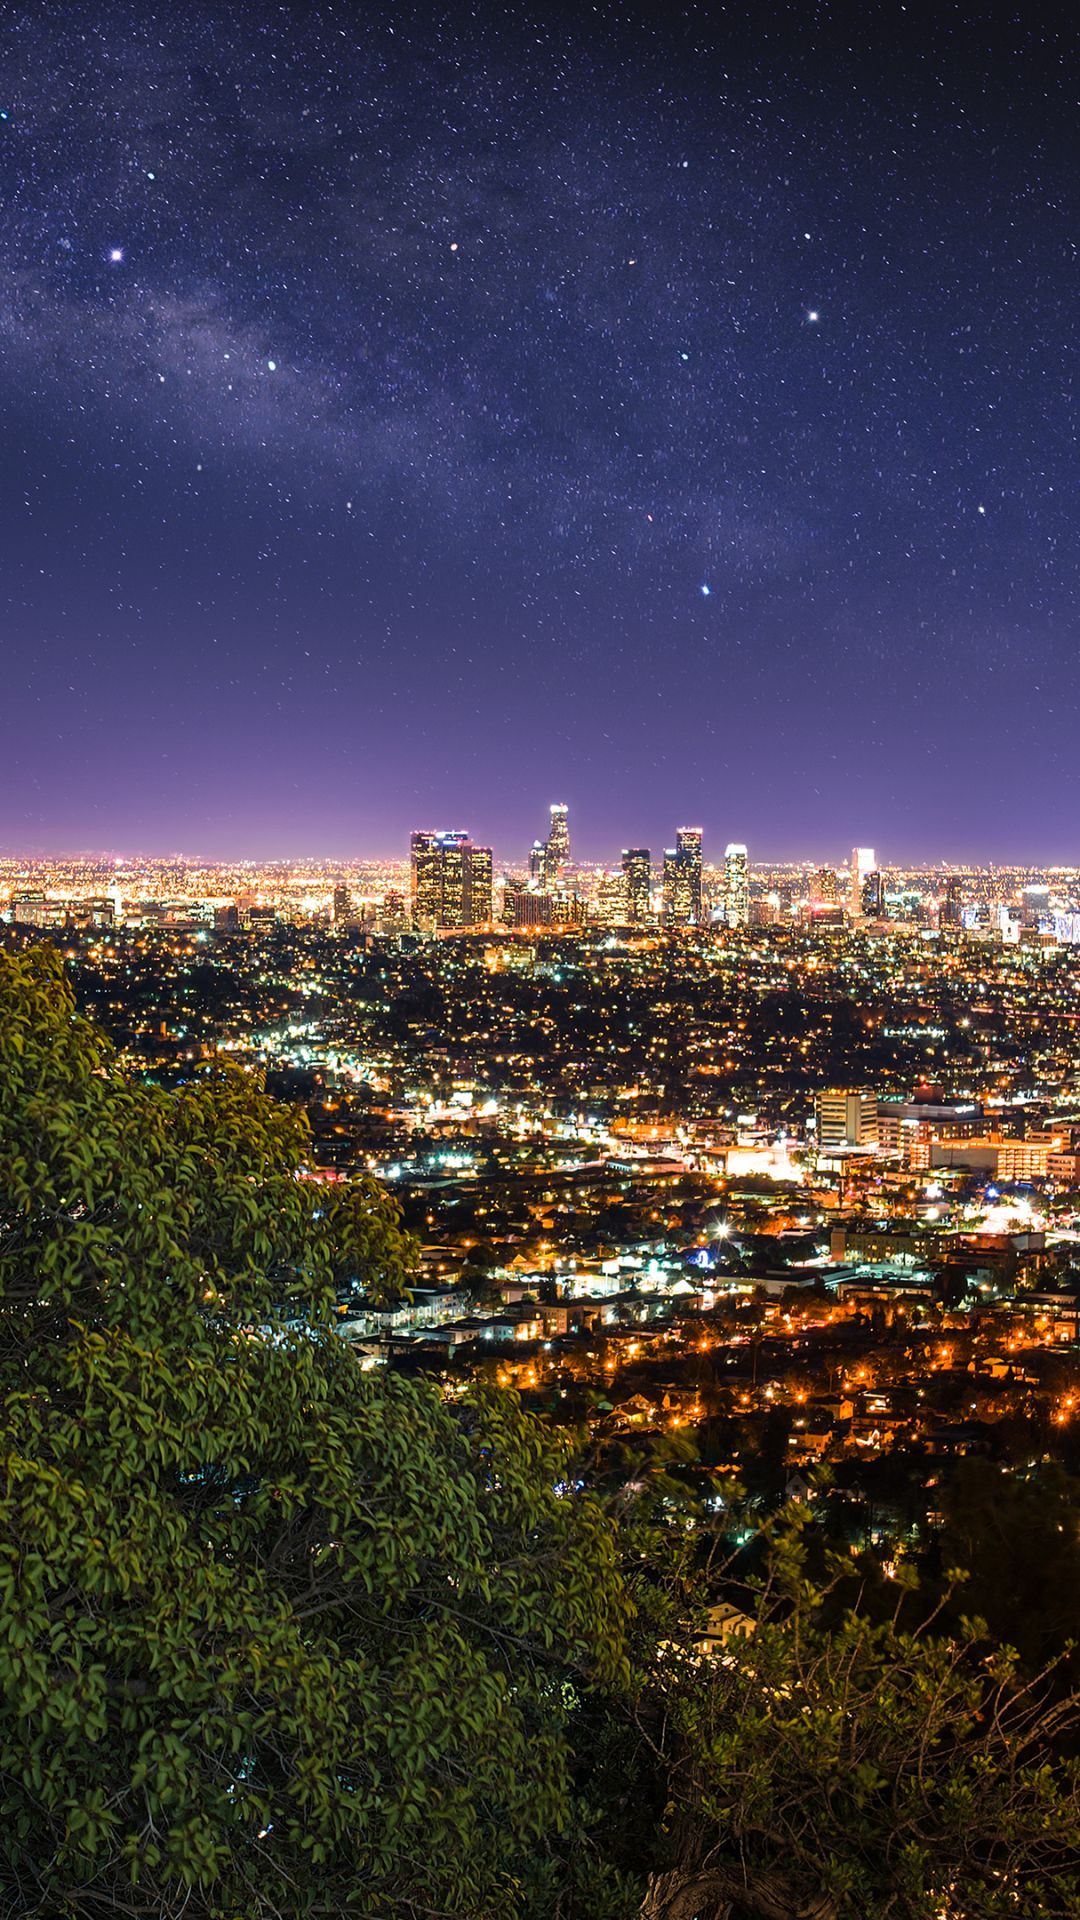 Man Made Los Angeles Cities United States 1080x19 Mobile Wallpaper Los Angeles Wallpaper Los Angeles California Photography California Photography